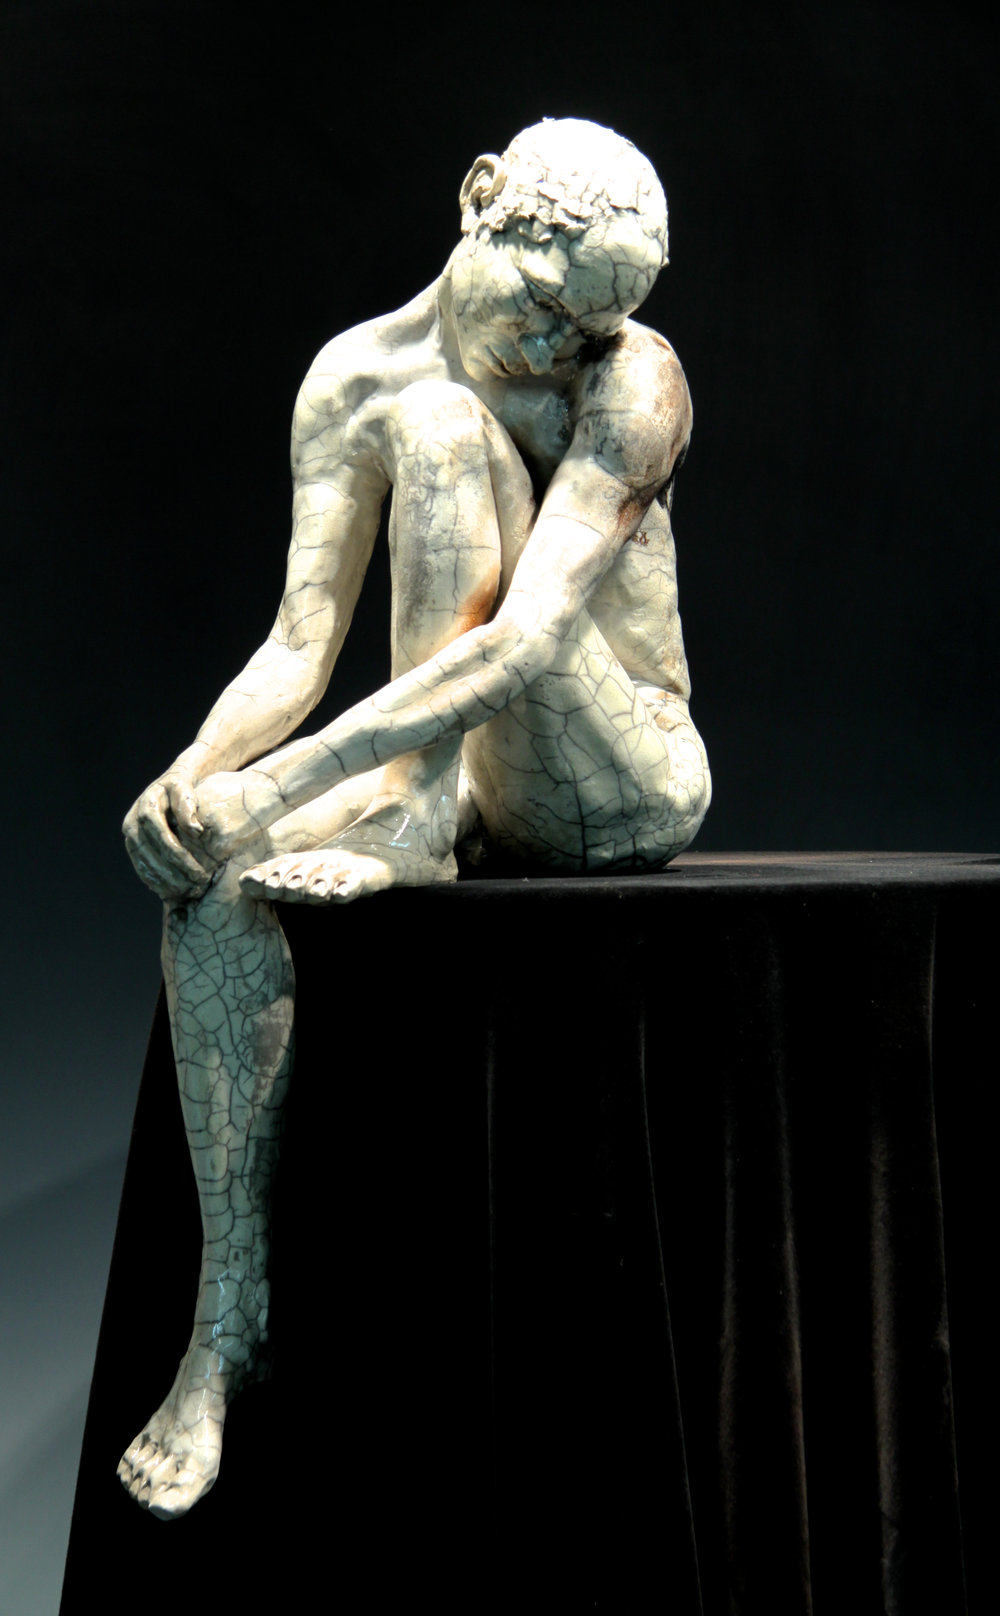 Evan Lurie Seated Man-Full-OHD- Bob Clyatt Sculpture.jpg